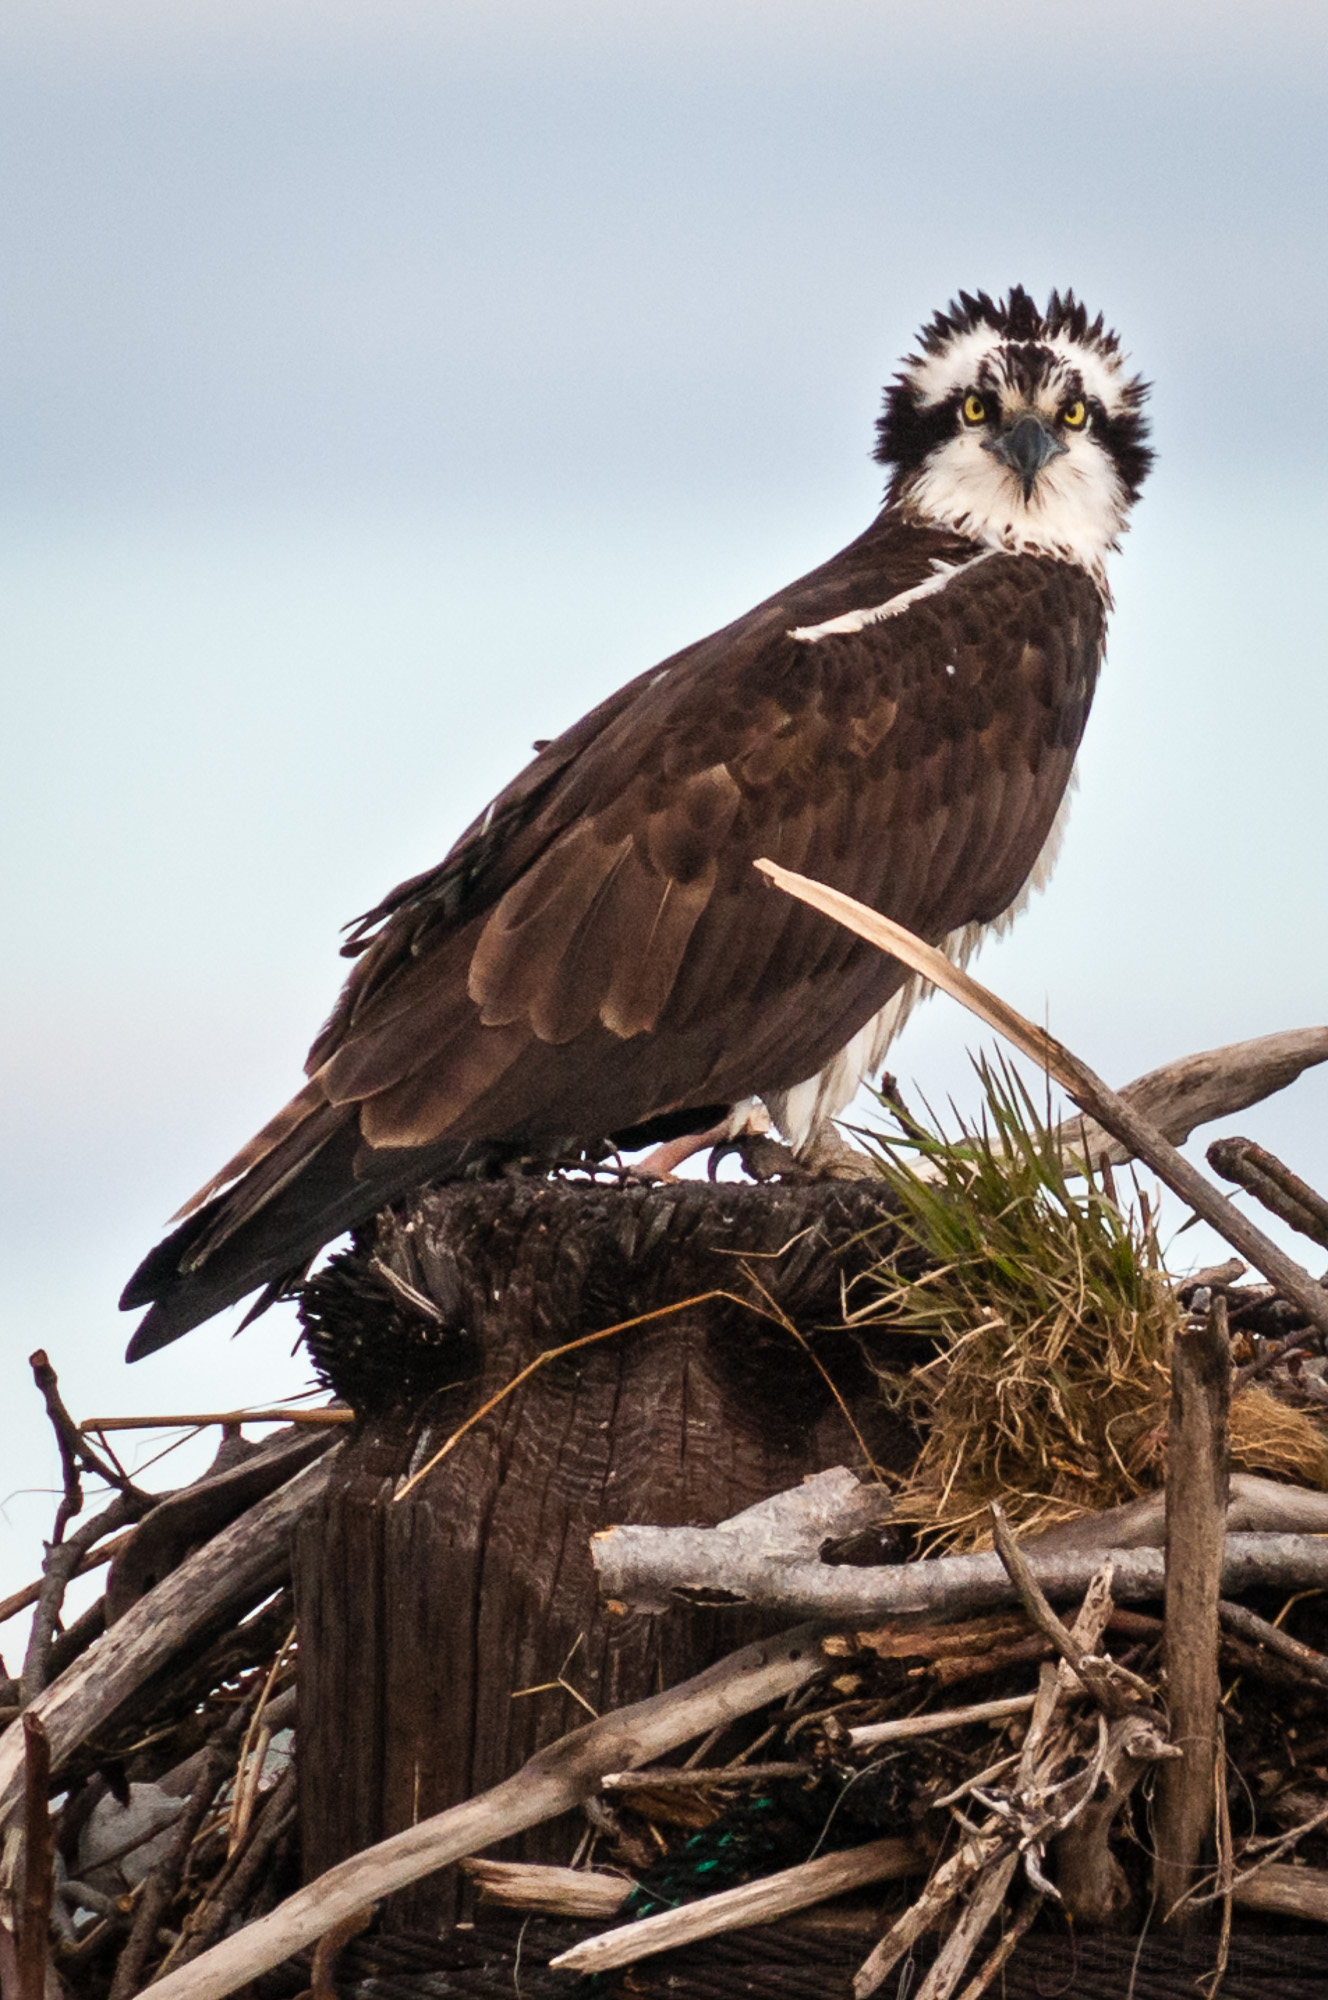 Closeup of osprey facing camera, head feathers upright.